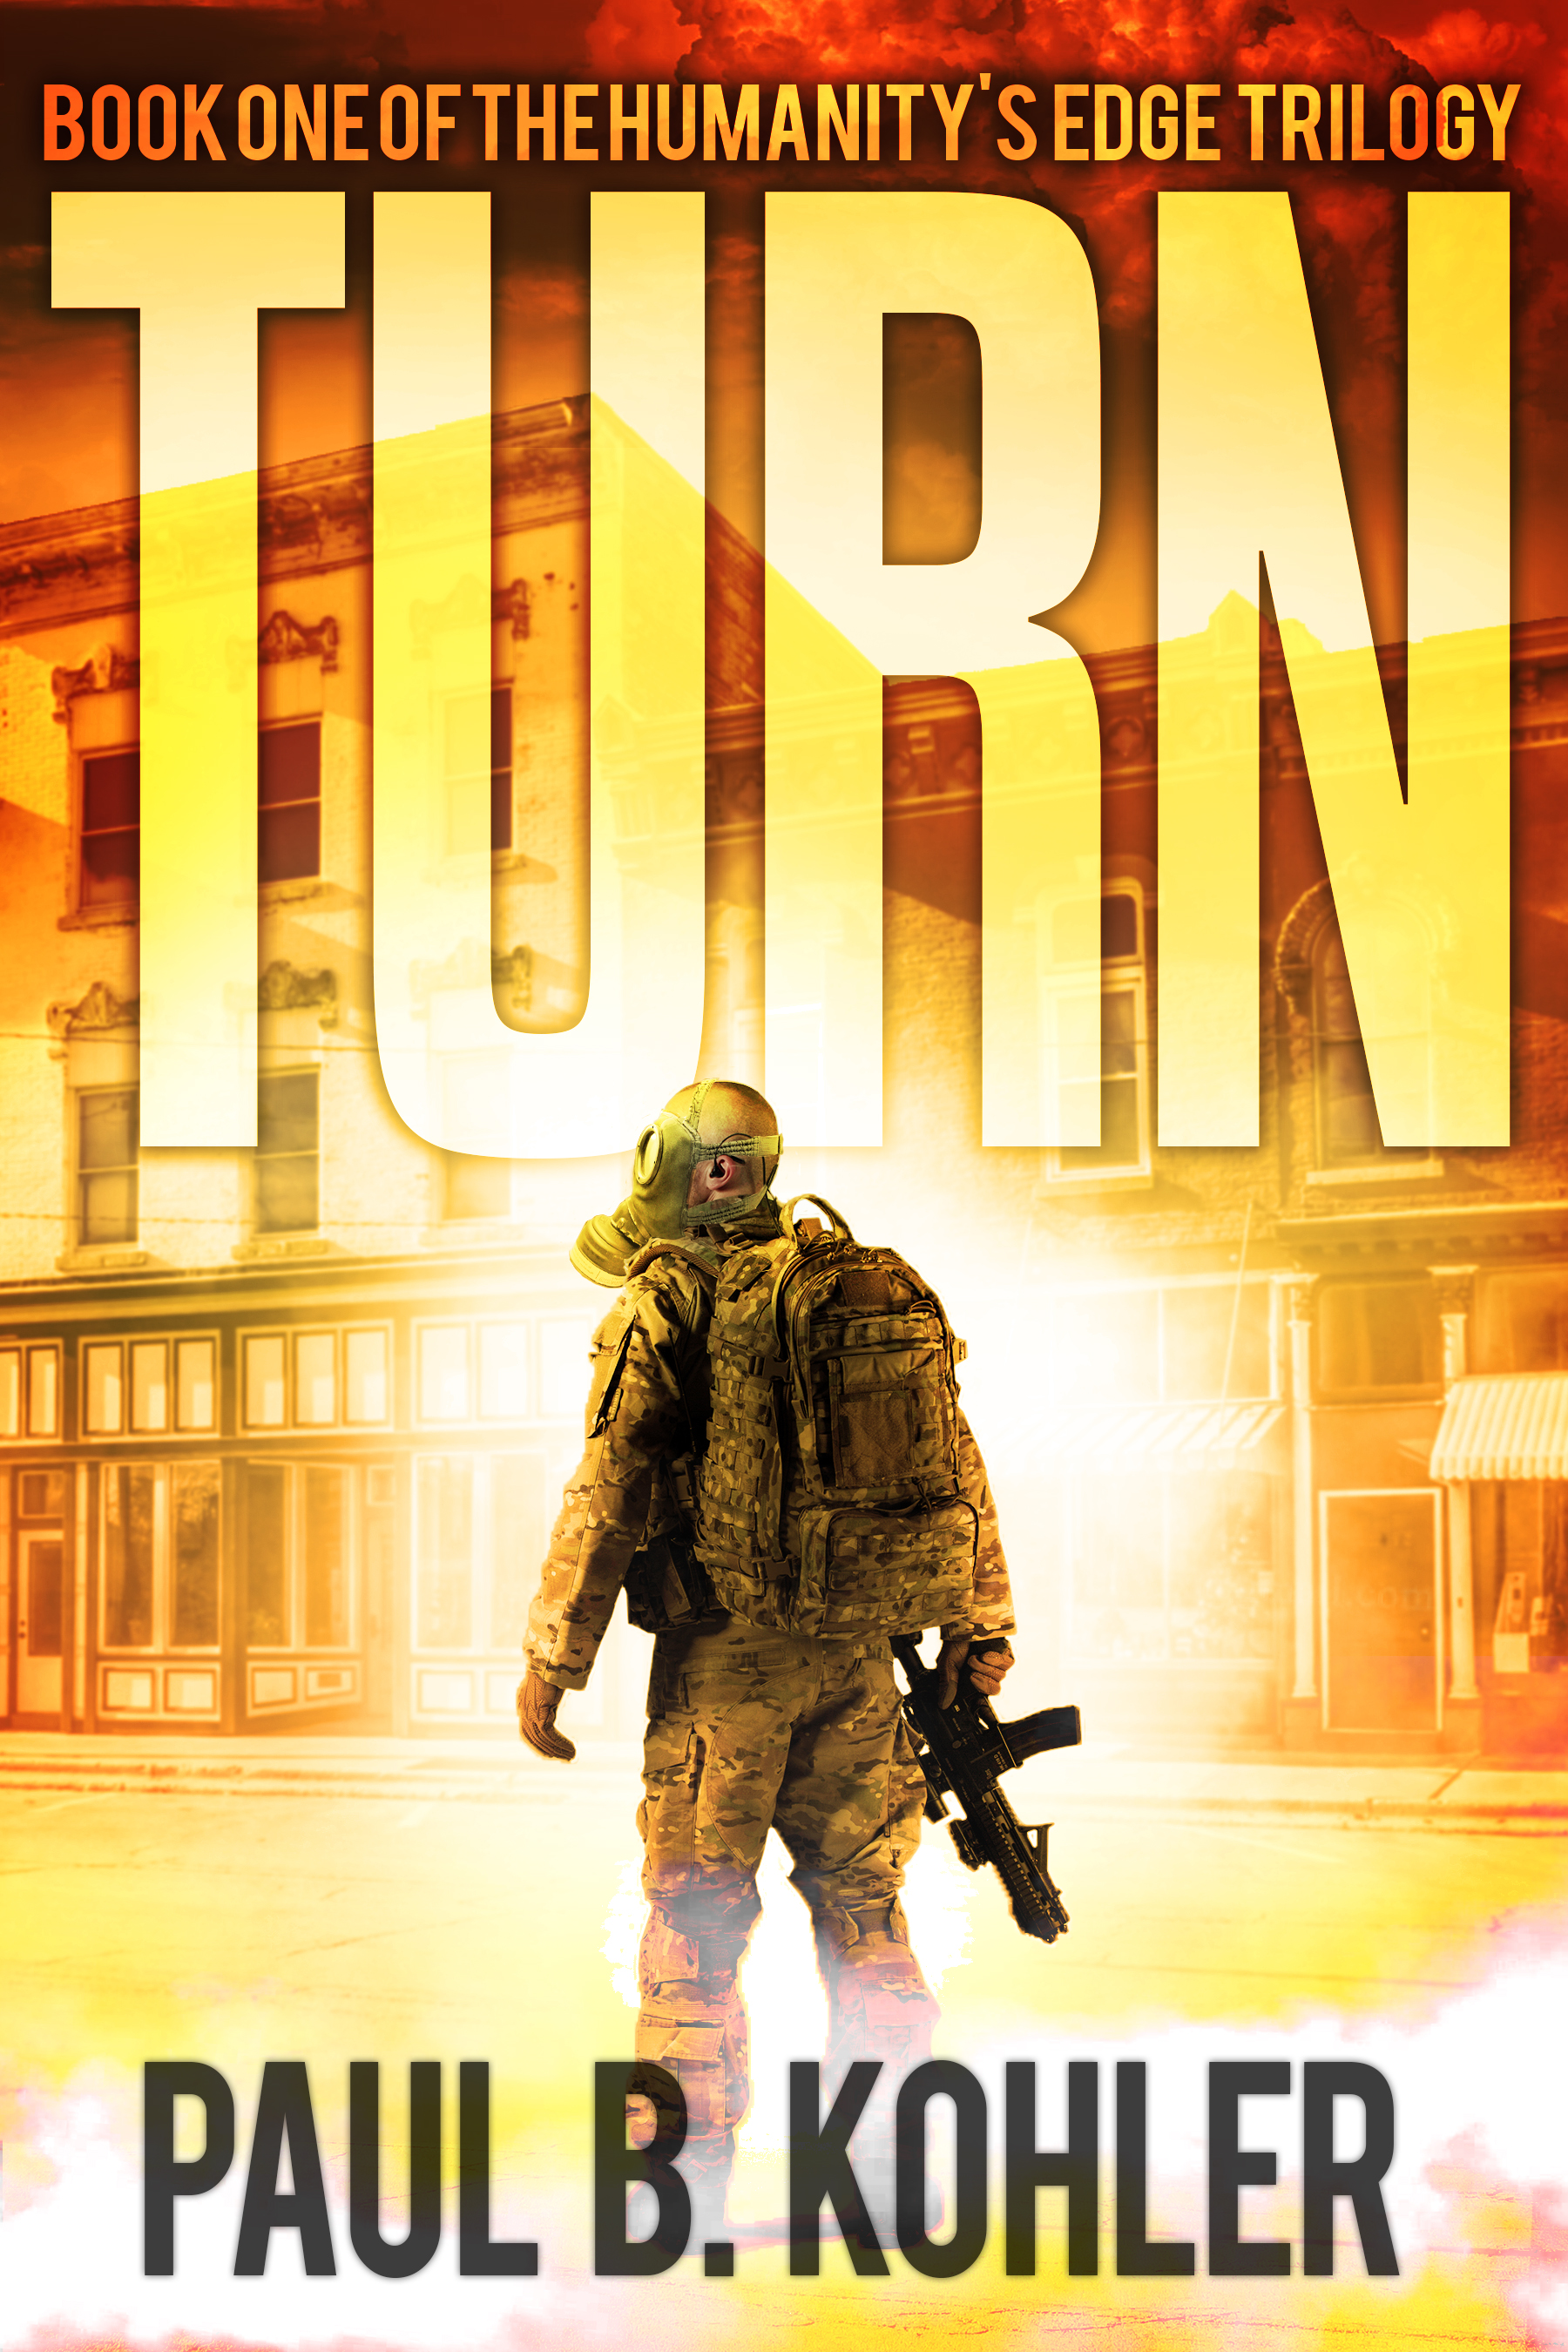 Turn, Clay Dobbs, Zombies, genetic engineering, humanity's edge, sci-fi book